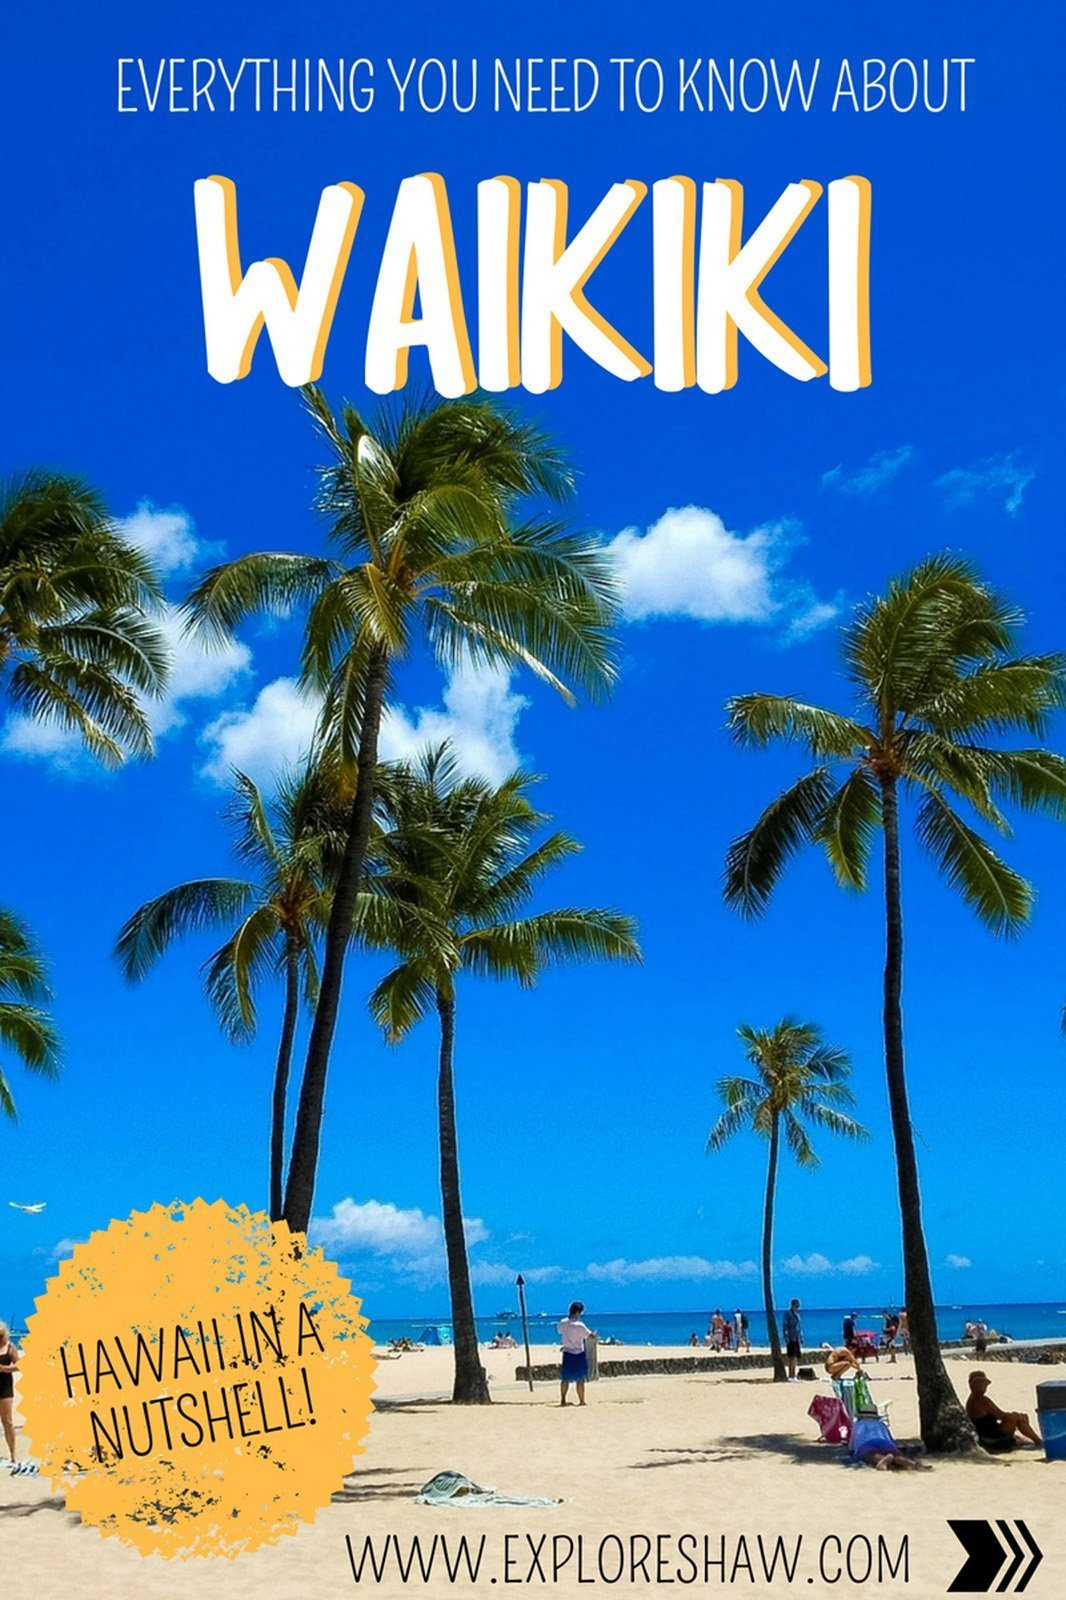 EVERYTHING YOU NEED TO KNOW ABOUT WAIKIKI